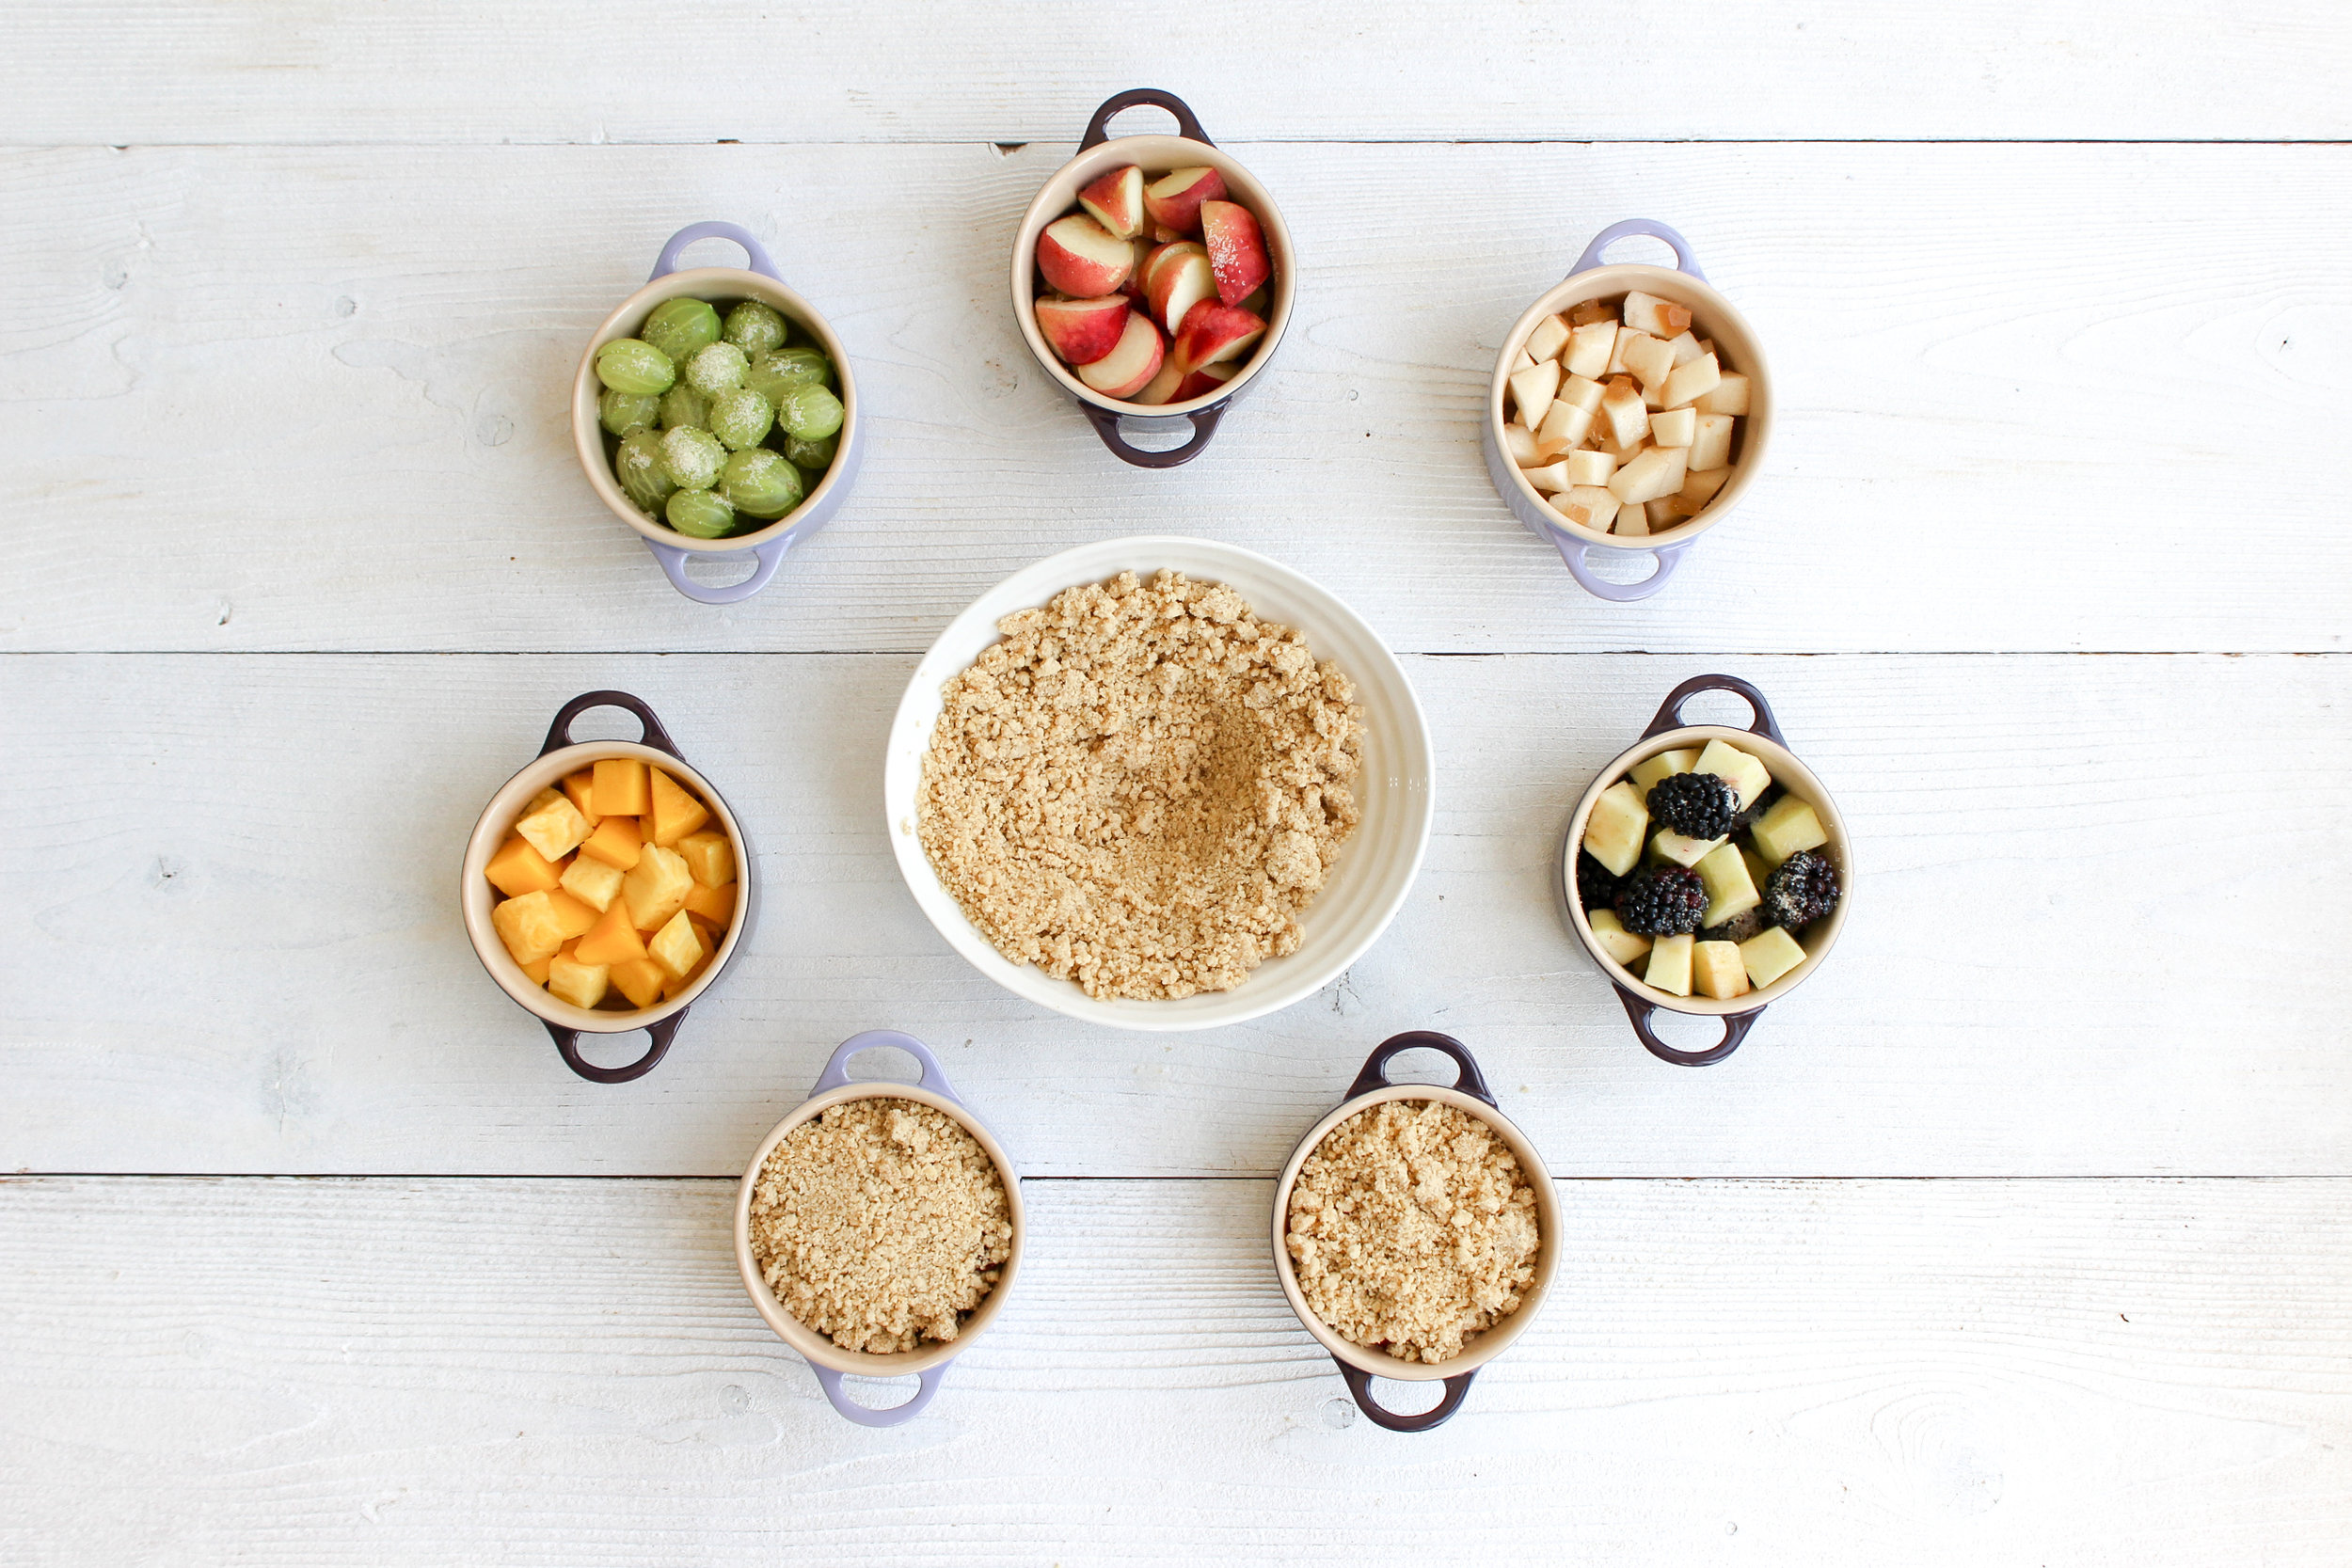 Best_Ever_Crumble_Recipes_Vegan_Gluten_Free_The_Organic_Cookery_School IMG_8316.jpg